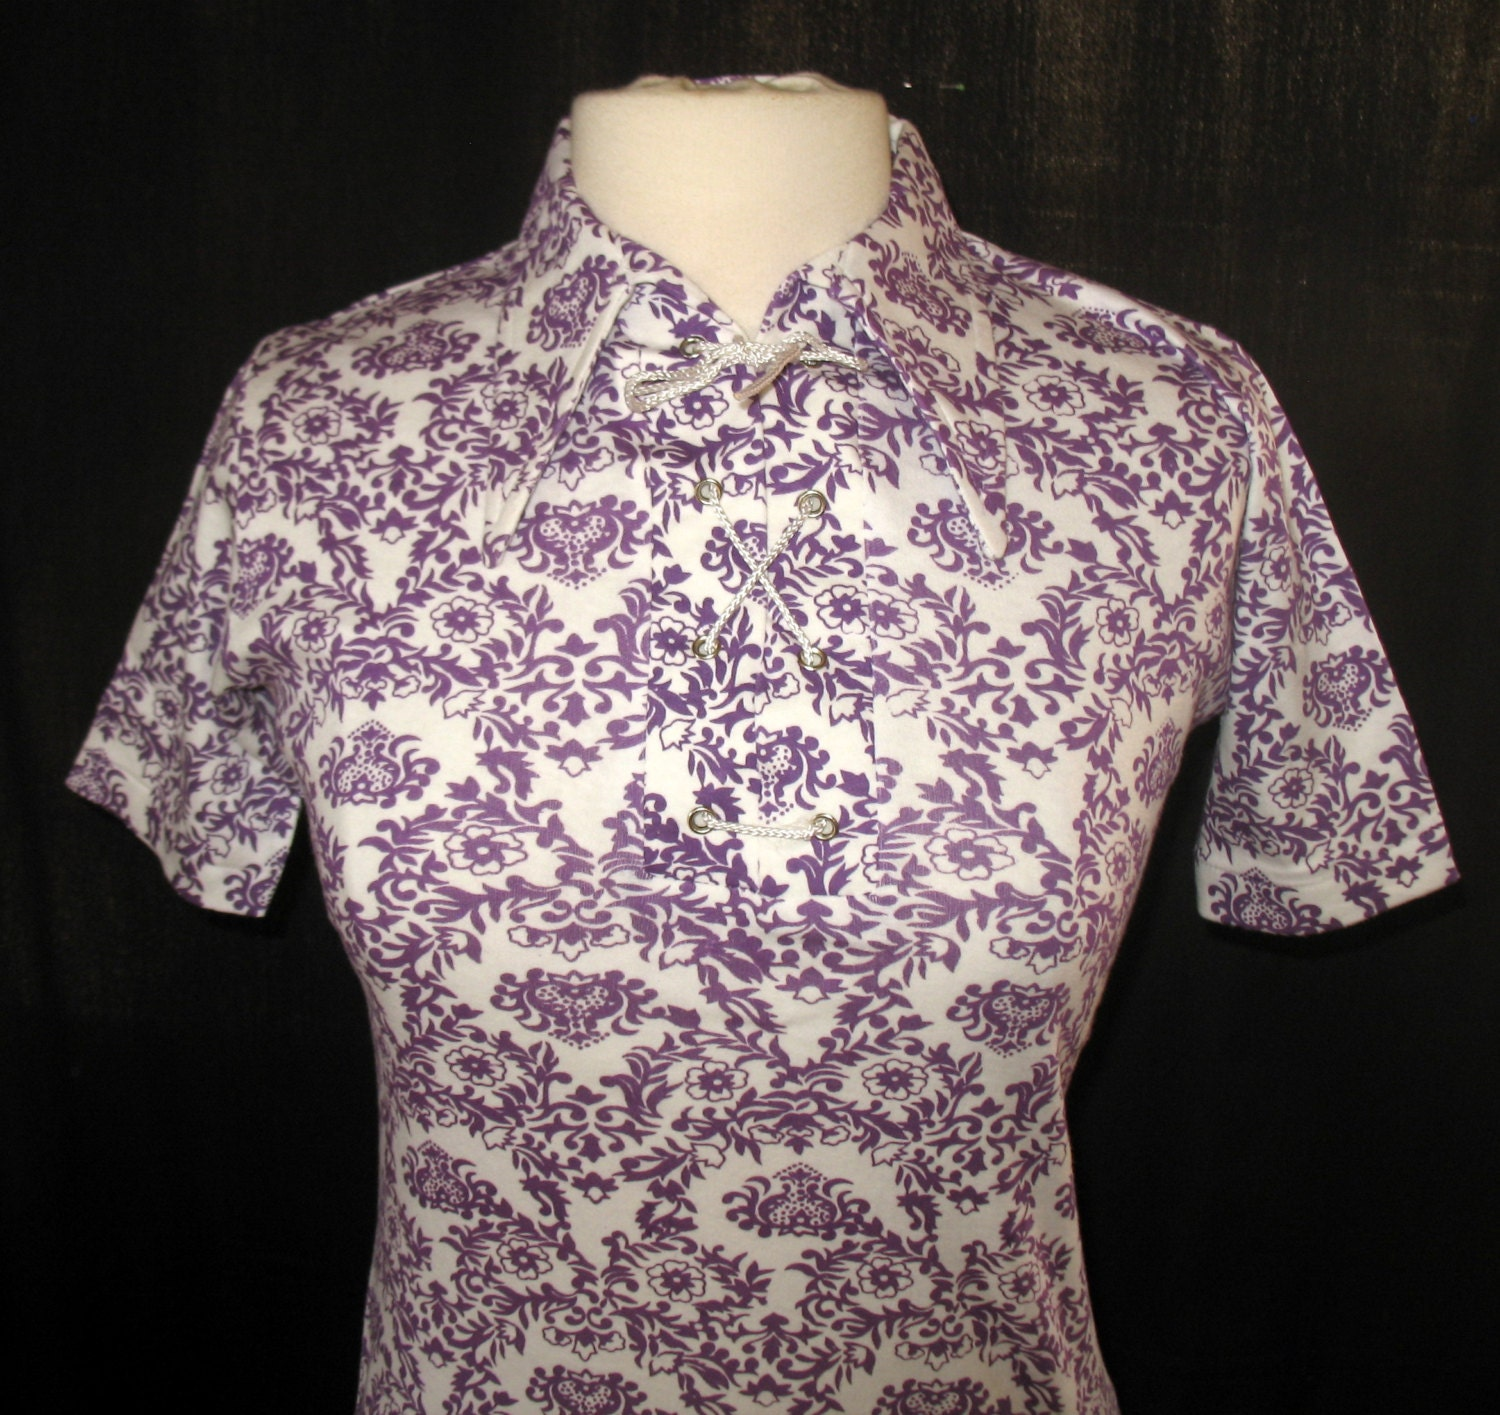 Vintage 1970s Body Shirt Tshirt Cotton Lace Up Front Purple & White Print Size M NOS - sewingmachinegirl